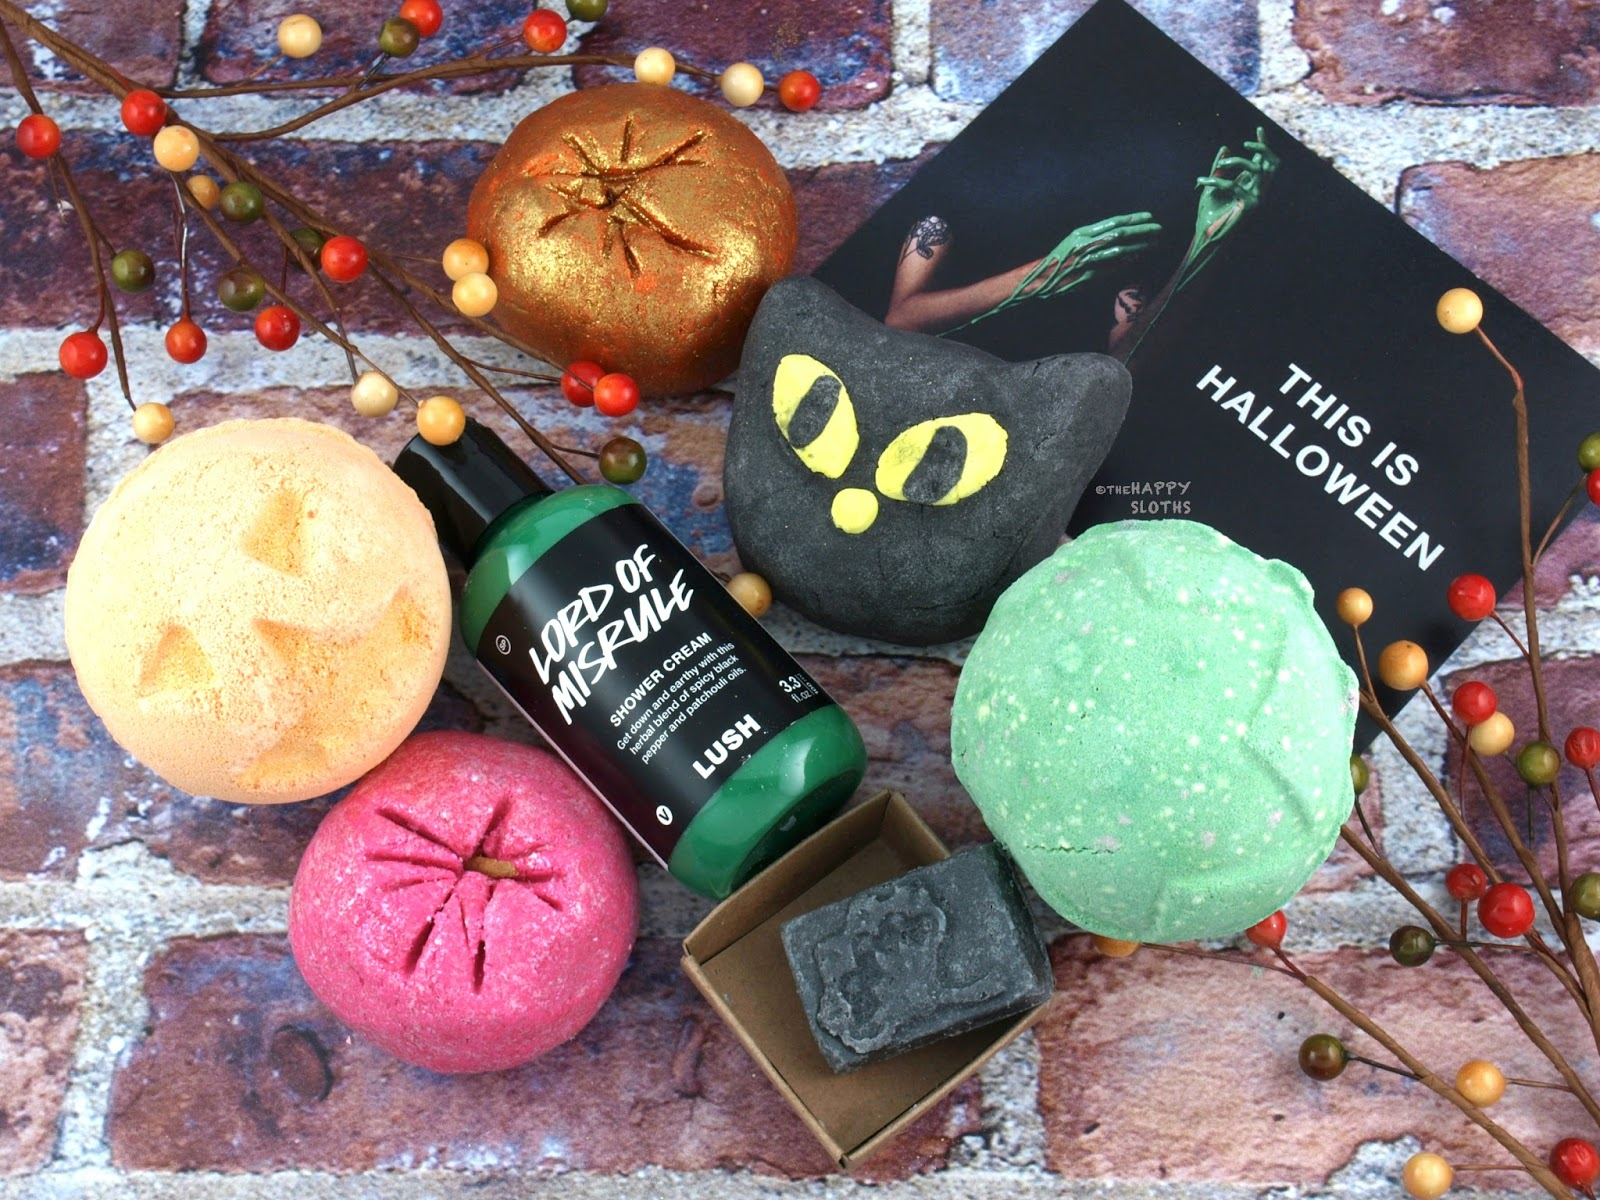 Lush Halloween 2017 Gift Guide